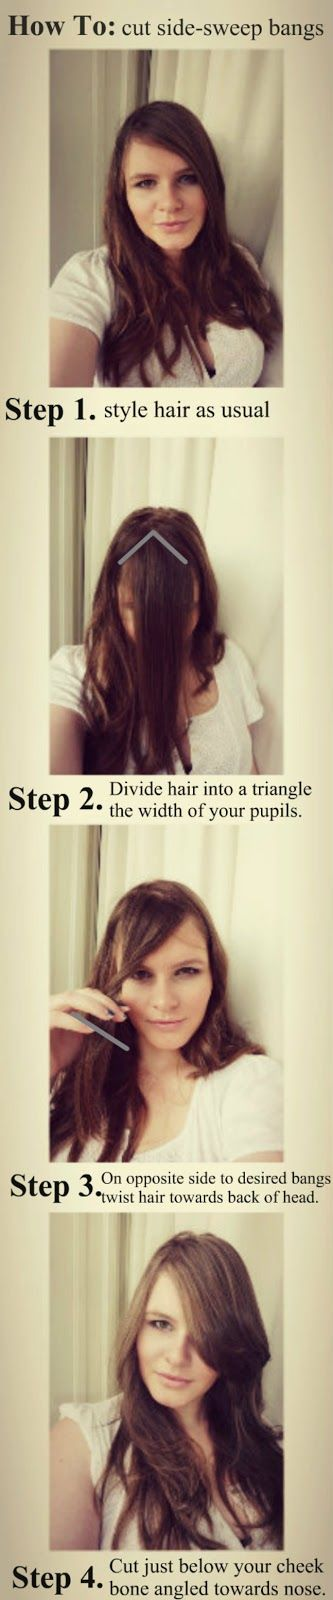 HollyWouldStudio: How To - Cut Side Sweep Bangs